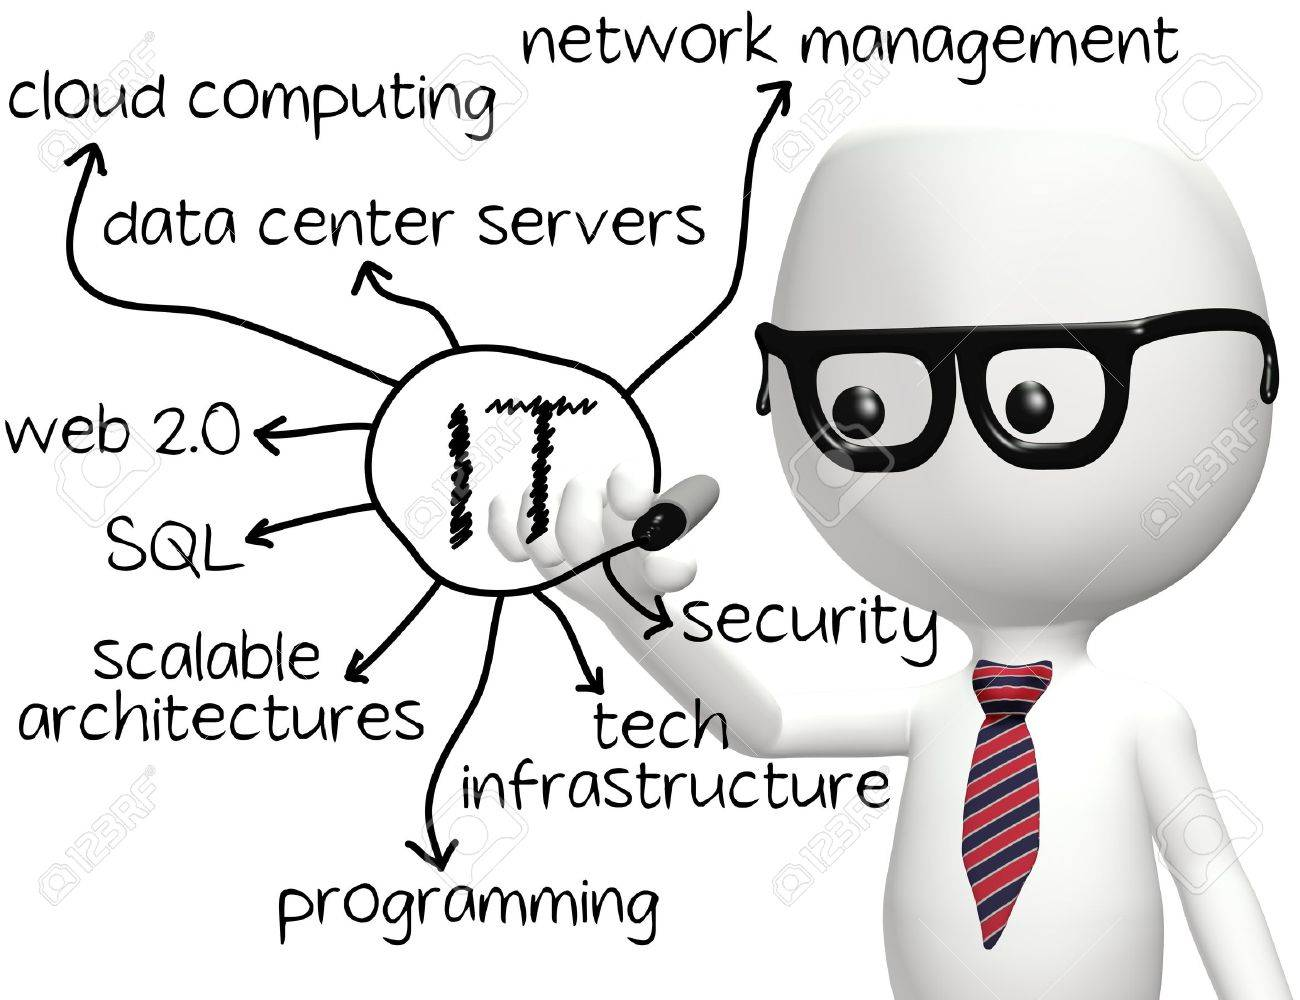 smart it programmer drawing information technology diagram stock Information Technology Application smart it programmer drawing information technology diagram stock photo 9379396